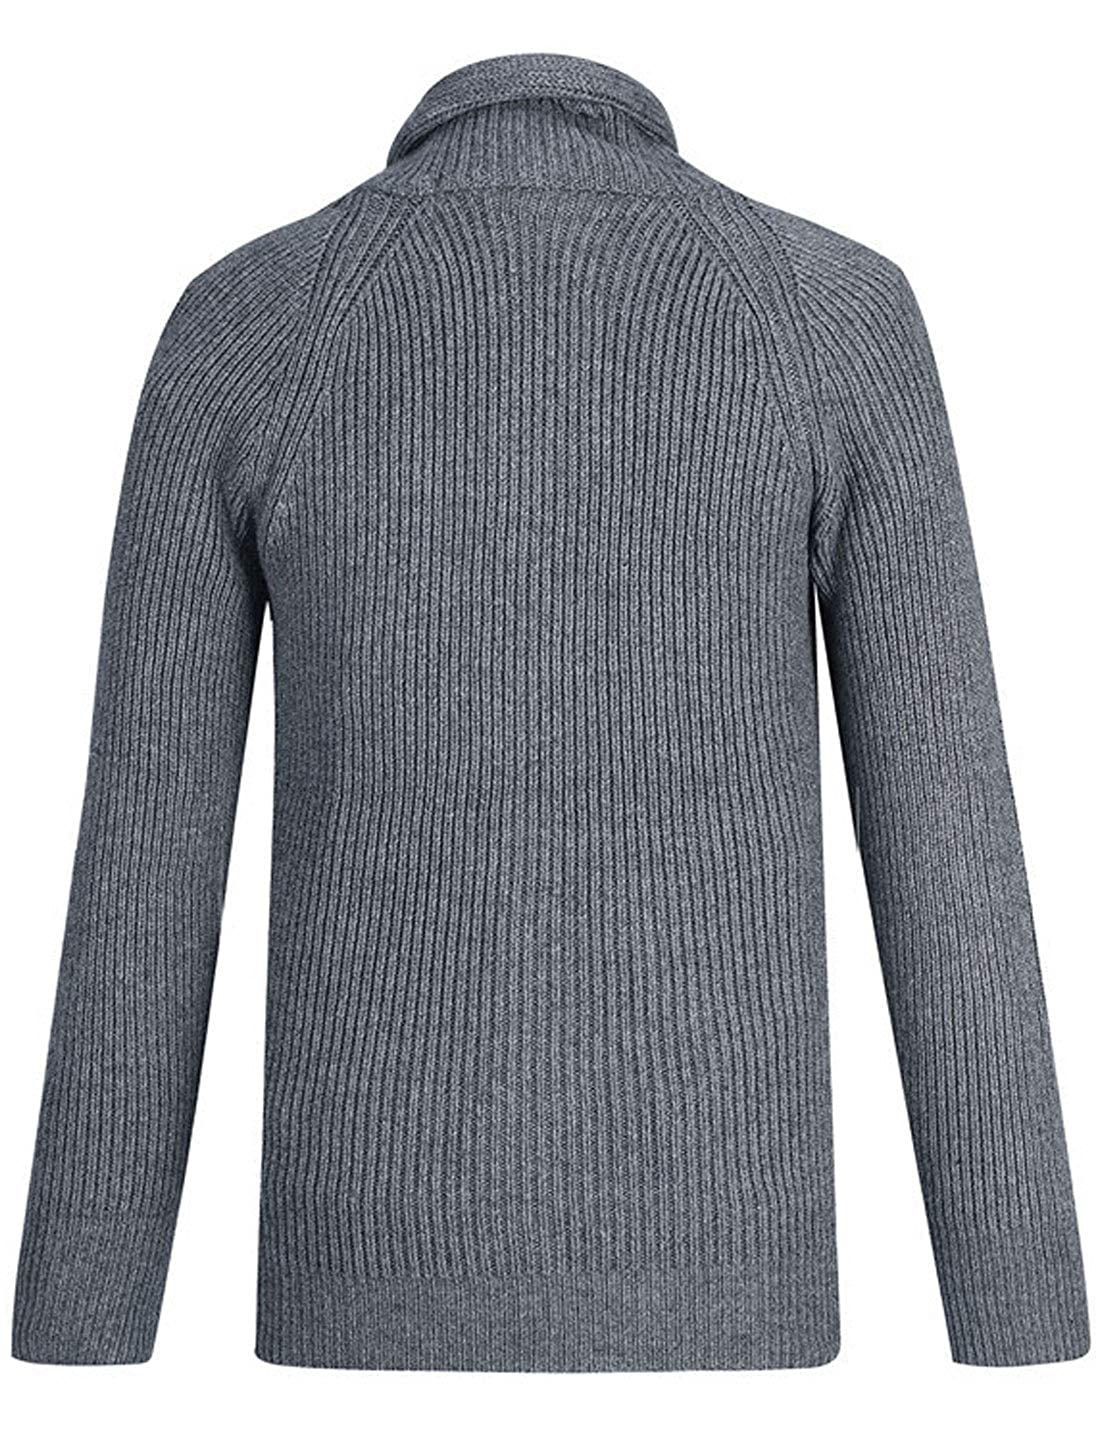 Omoone Mens Button Down Shawl Collar Cable Knit Cardigan Sweater with Pockets